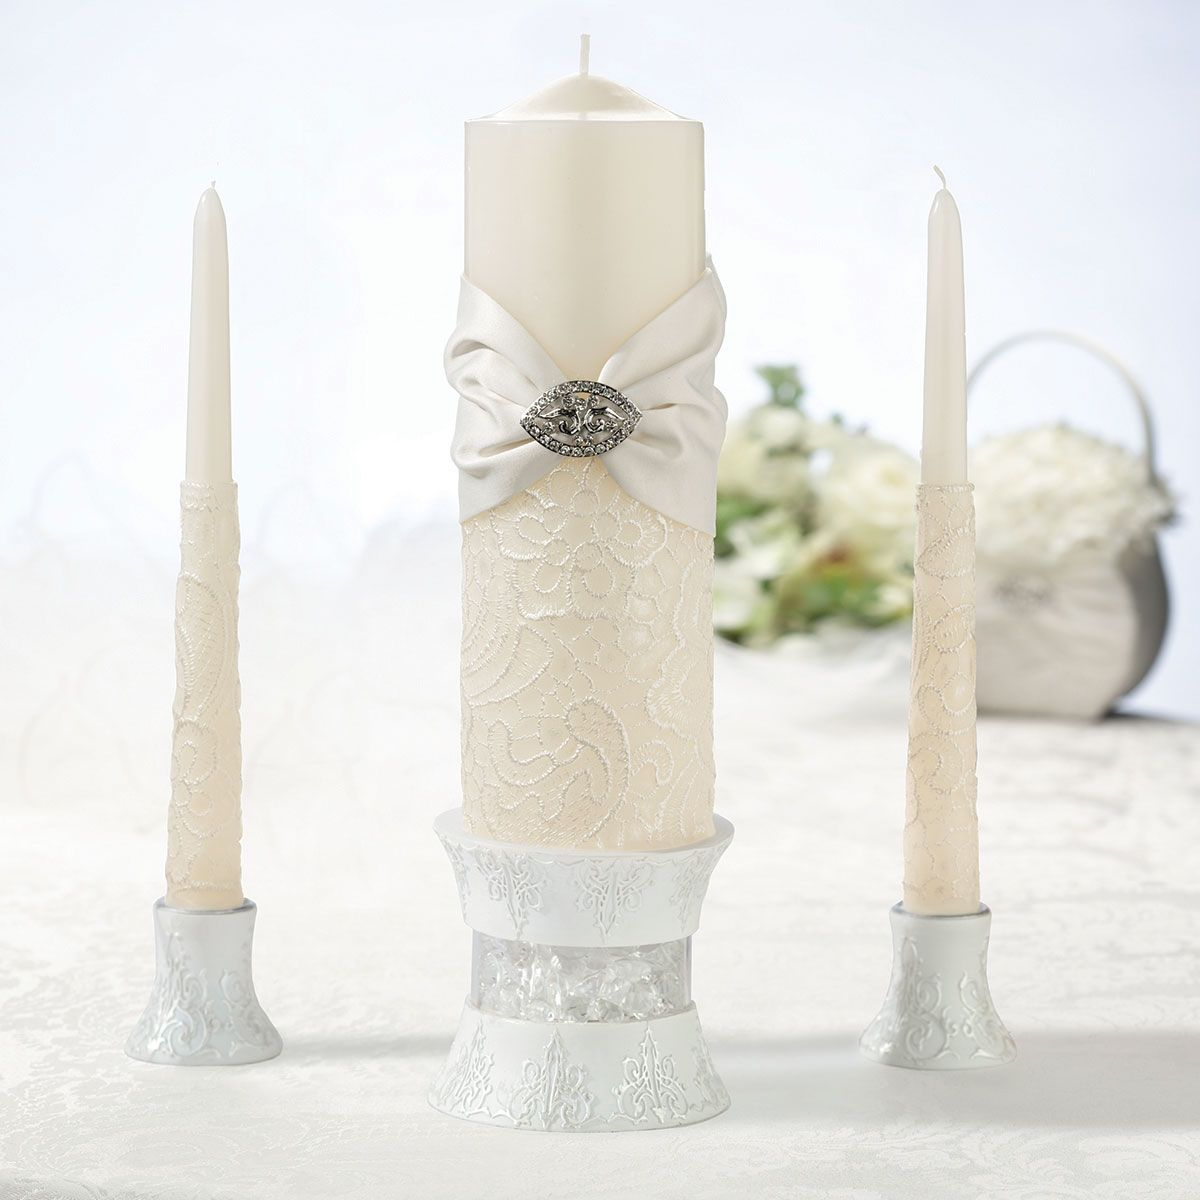 """Lillian Rose Vintage Cream Lace Pillar and Two Tapers This wedding candle set includes two taper candles (9.25"""" tall) and one pillar candle (9"""" tall). Both are made of cream-colored wax and decorated with silver wax in the design of a lace pattern. The pillar candle is wrapped in a cream satin sash accented by a rhinestone ornament. Price $45.00"""